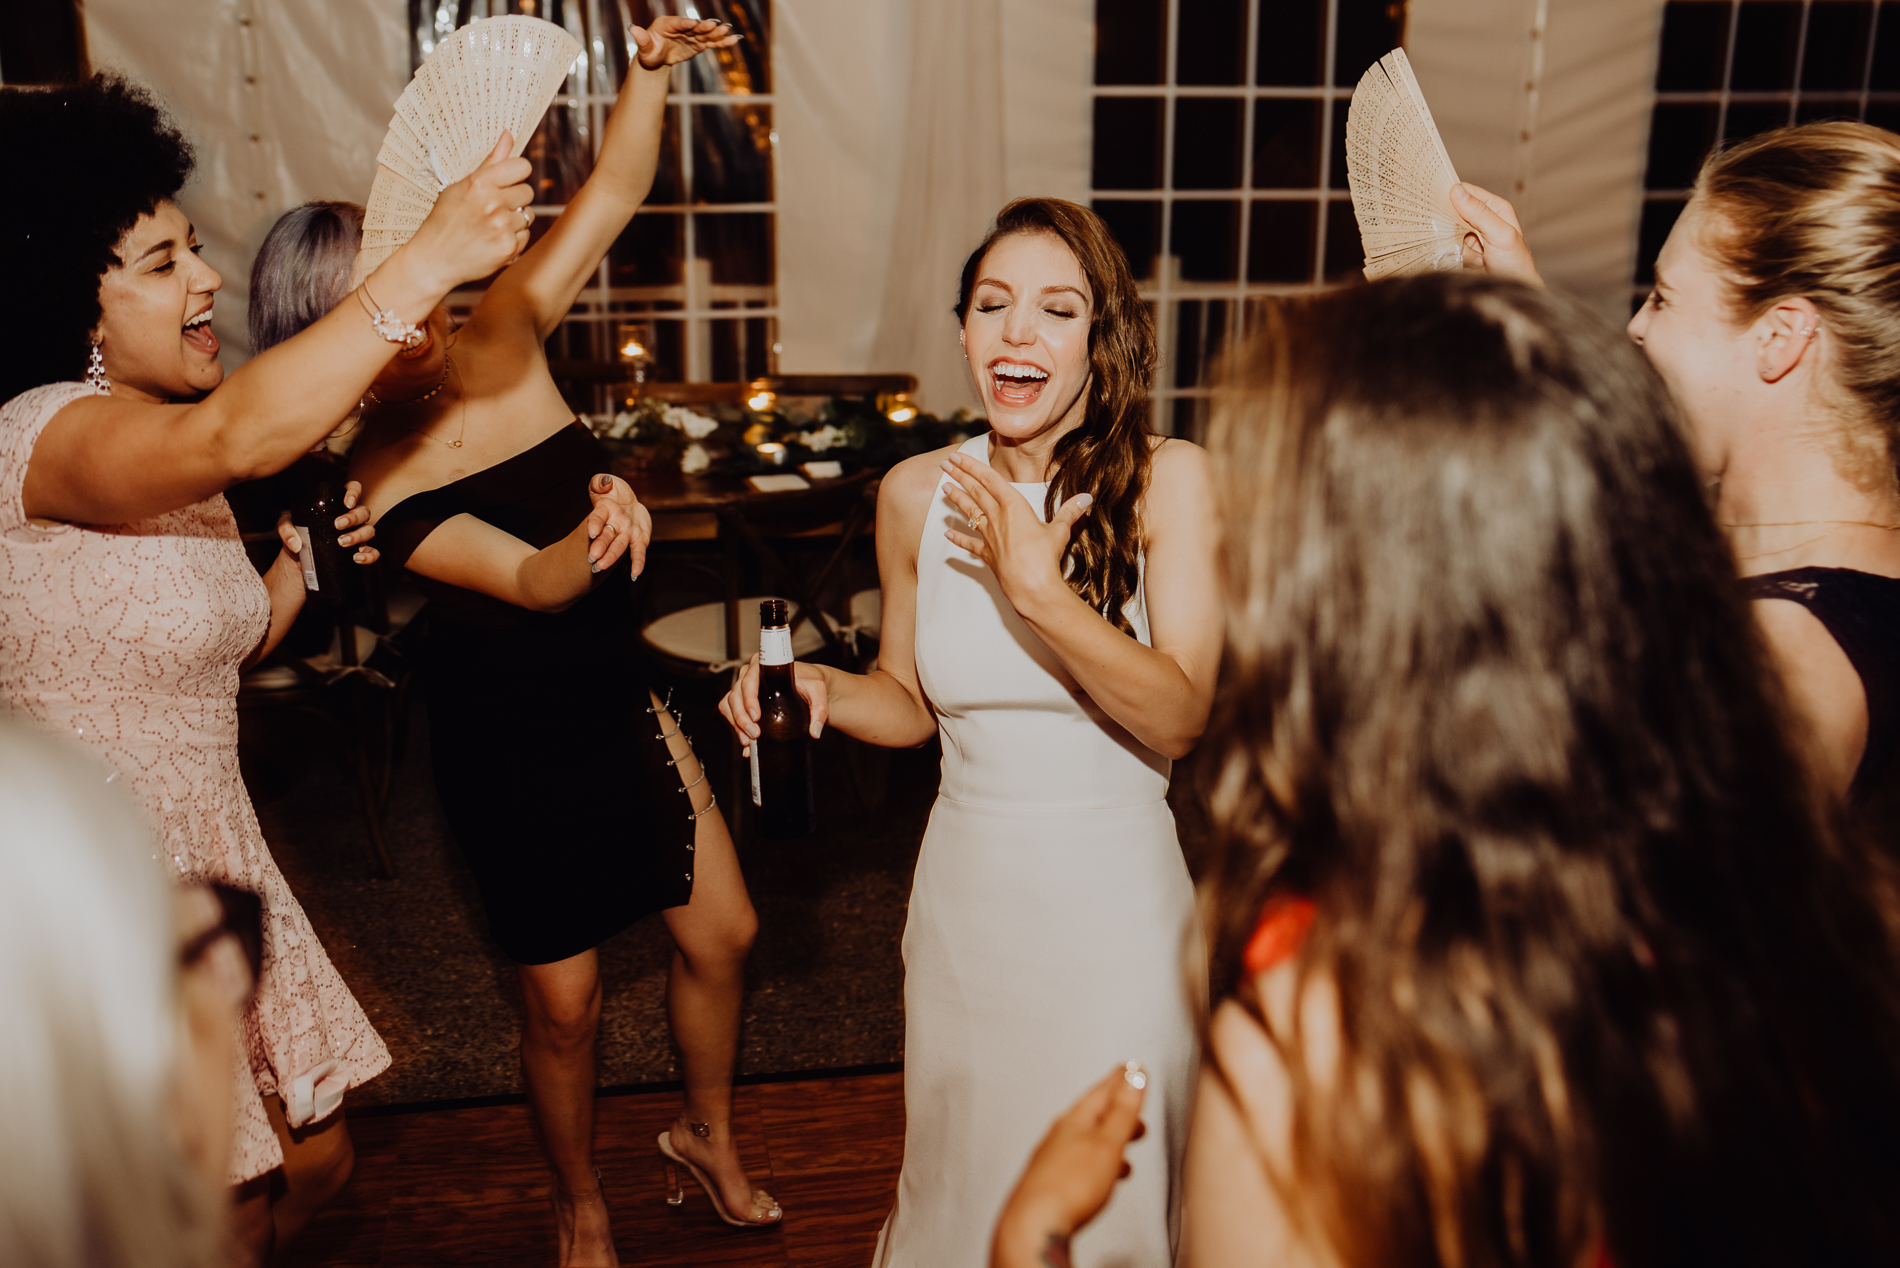 gabi and campbell east nashville wedding at riverwood mansion by wilde company-55.jpg